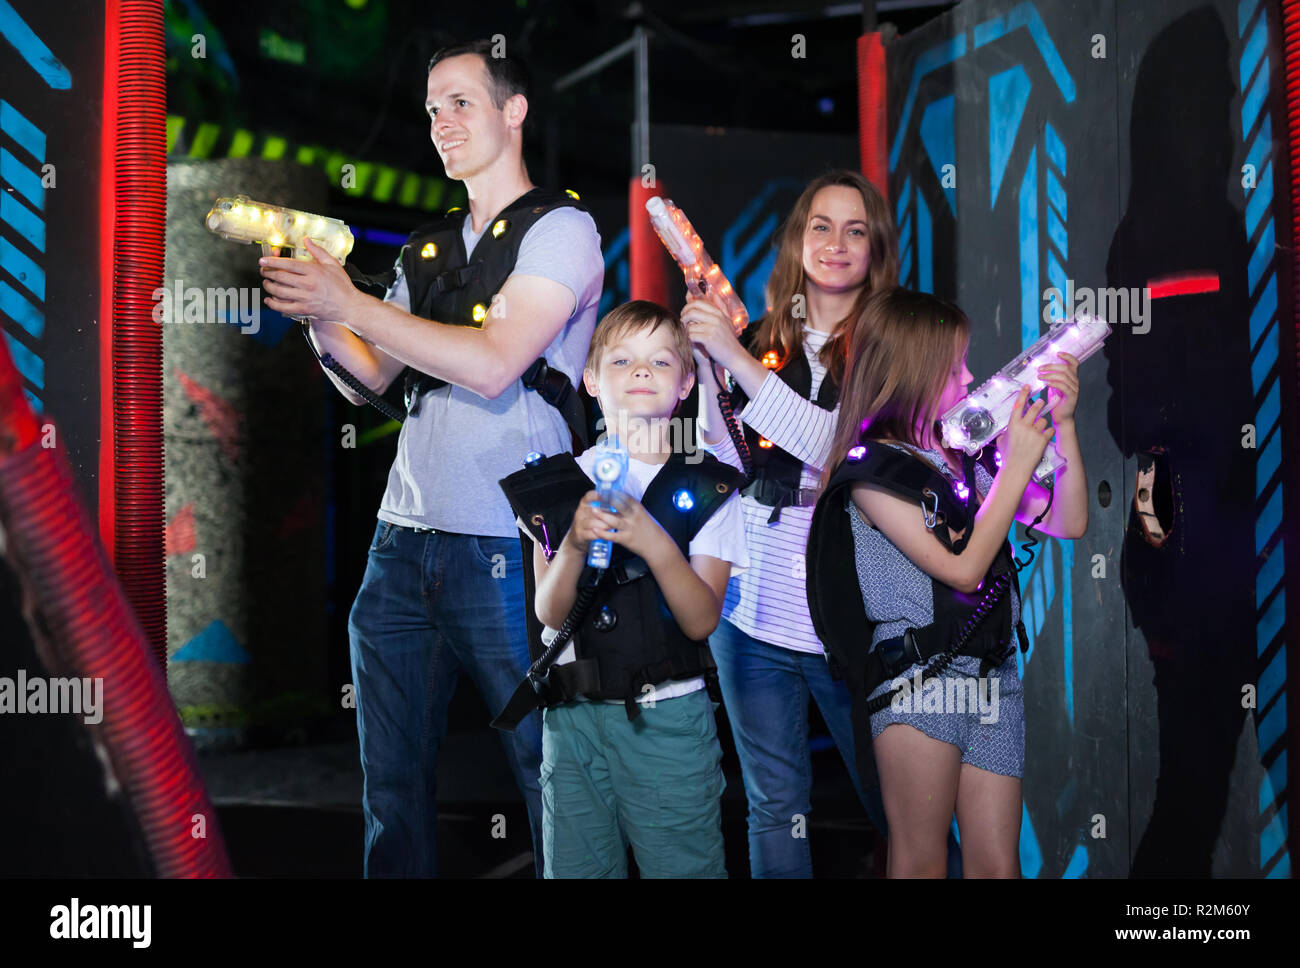 Group of happy kids and adults with laser guns having fun on